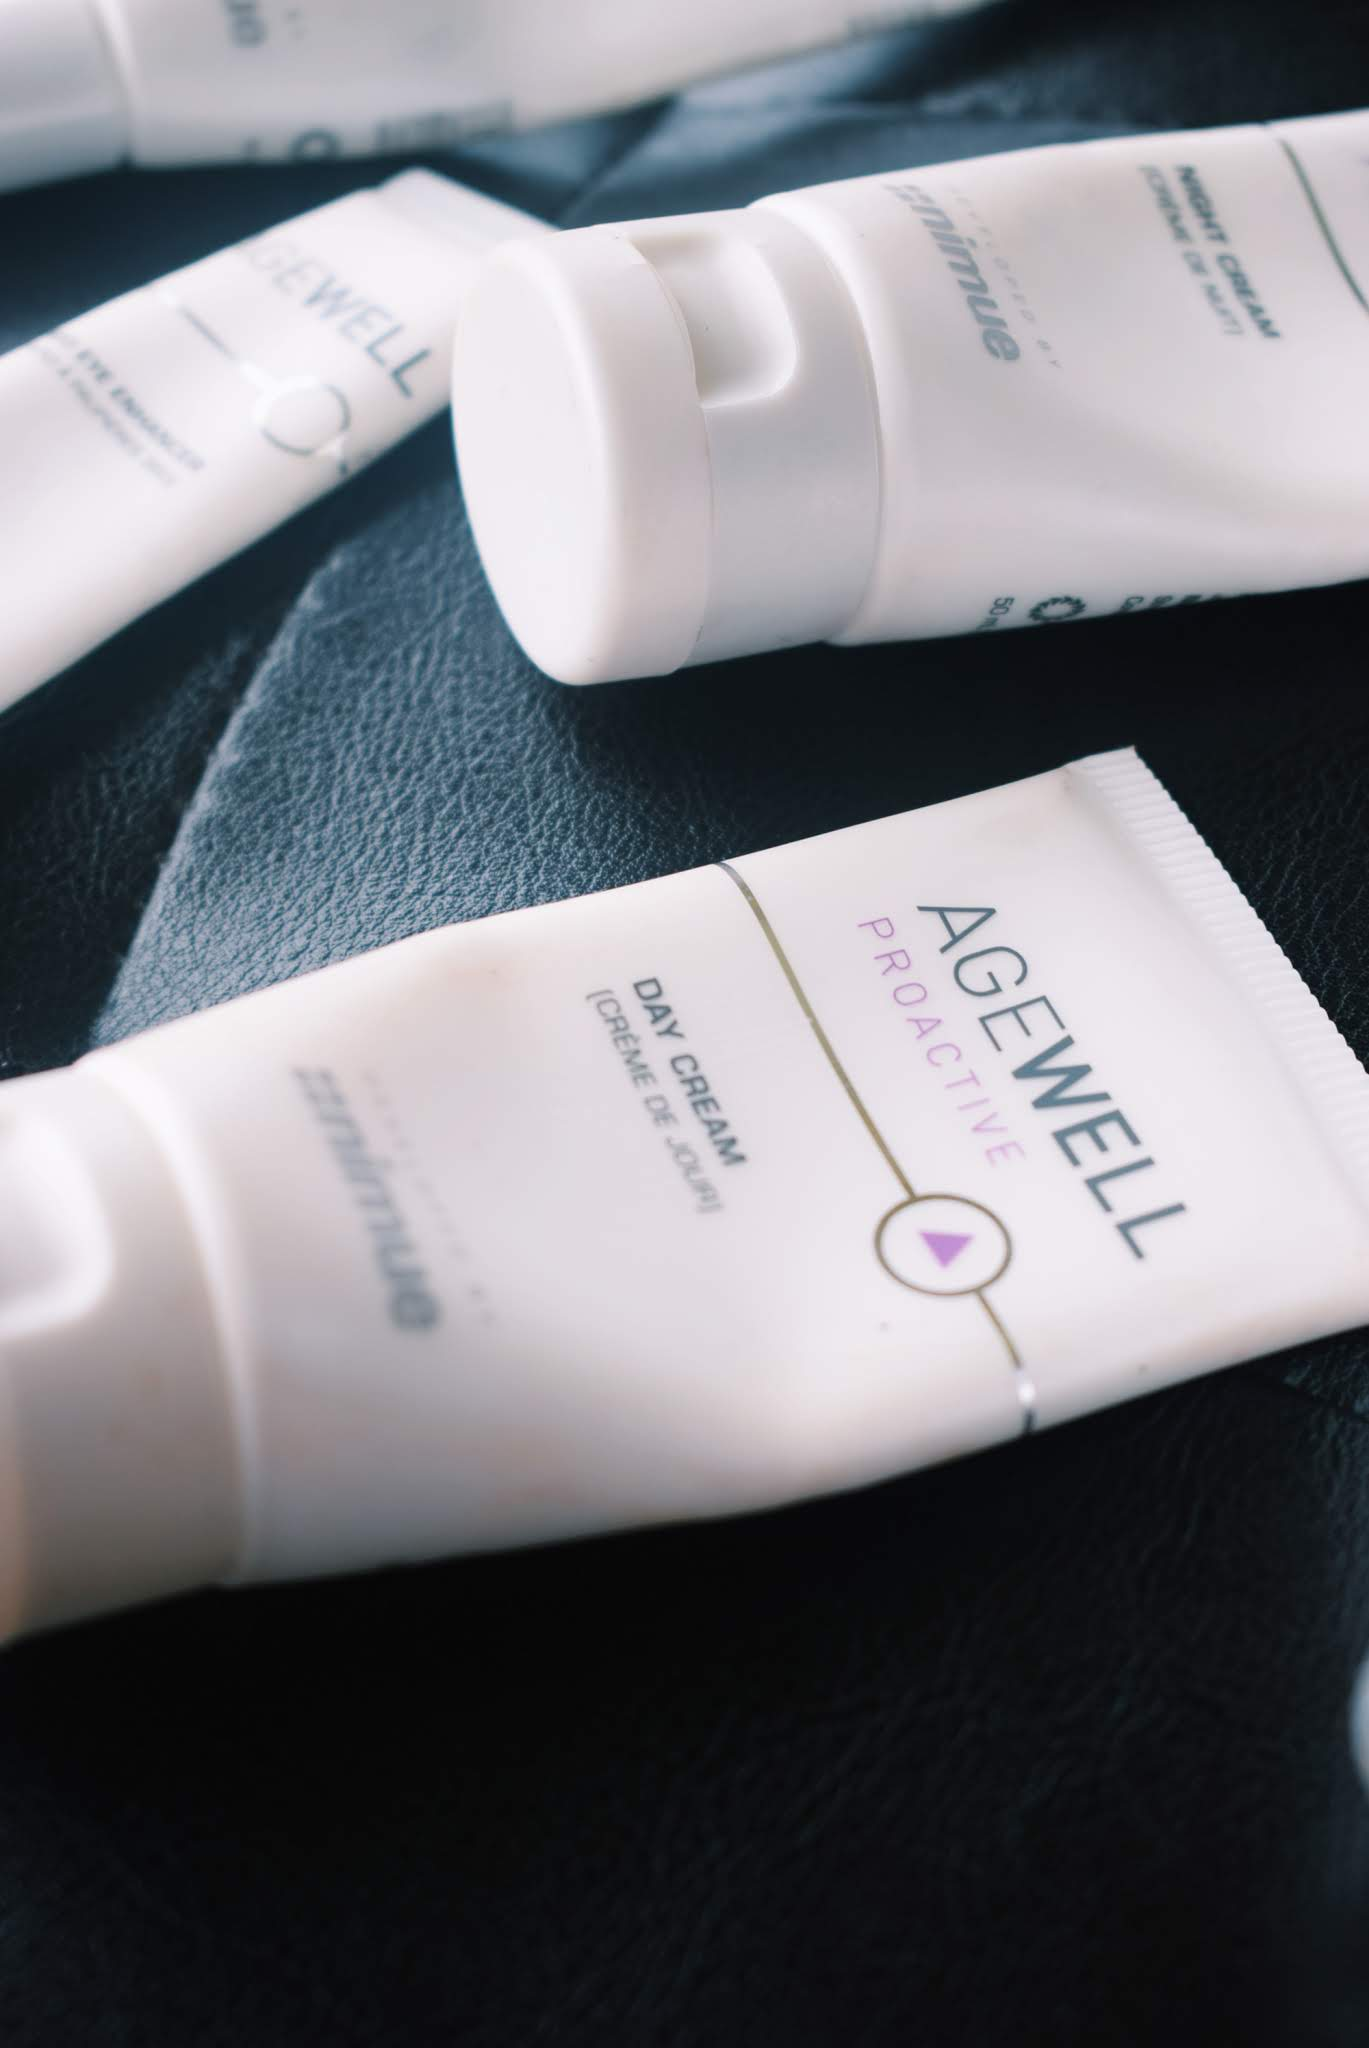 Agewell proactive skin care south africa